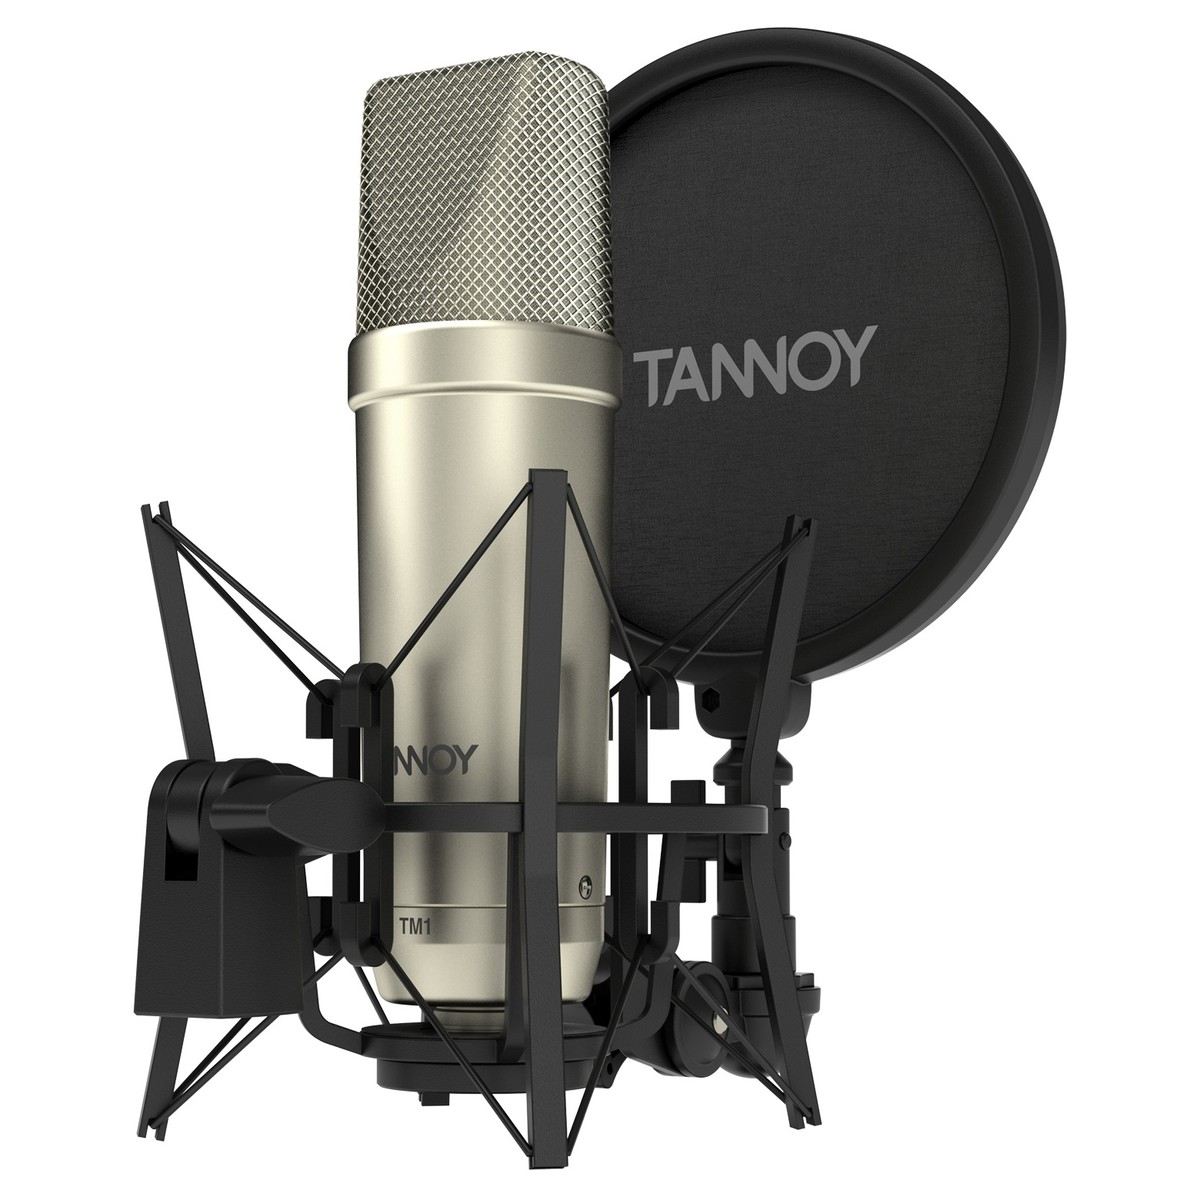 tannoy tm1 recording package with condenser microphone at gear4music. Black Bedroom Furniture Sets. Home Design Ideas